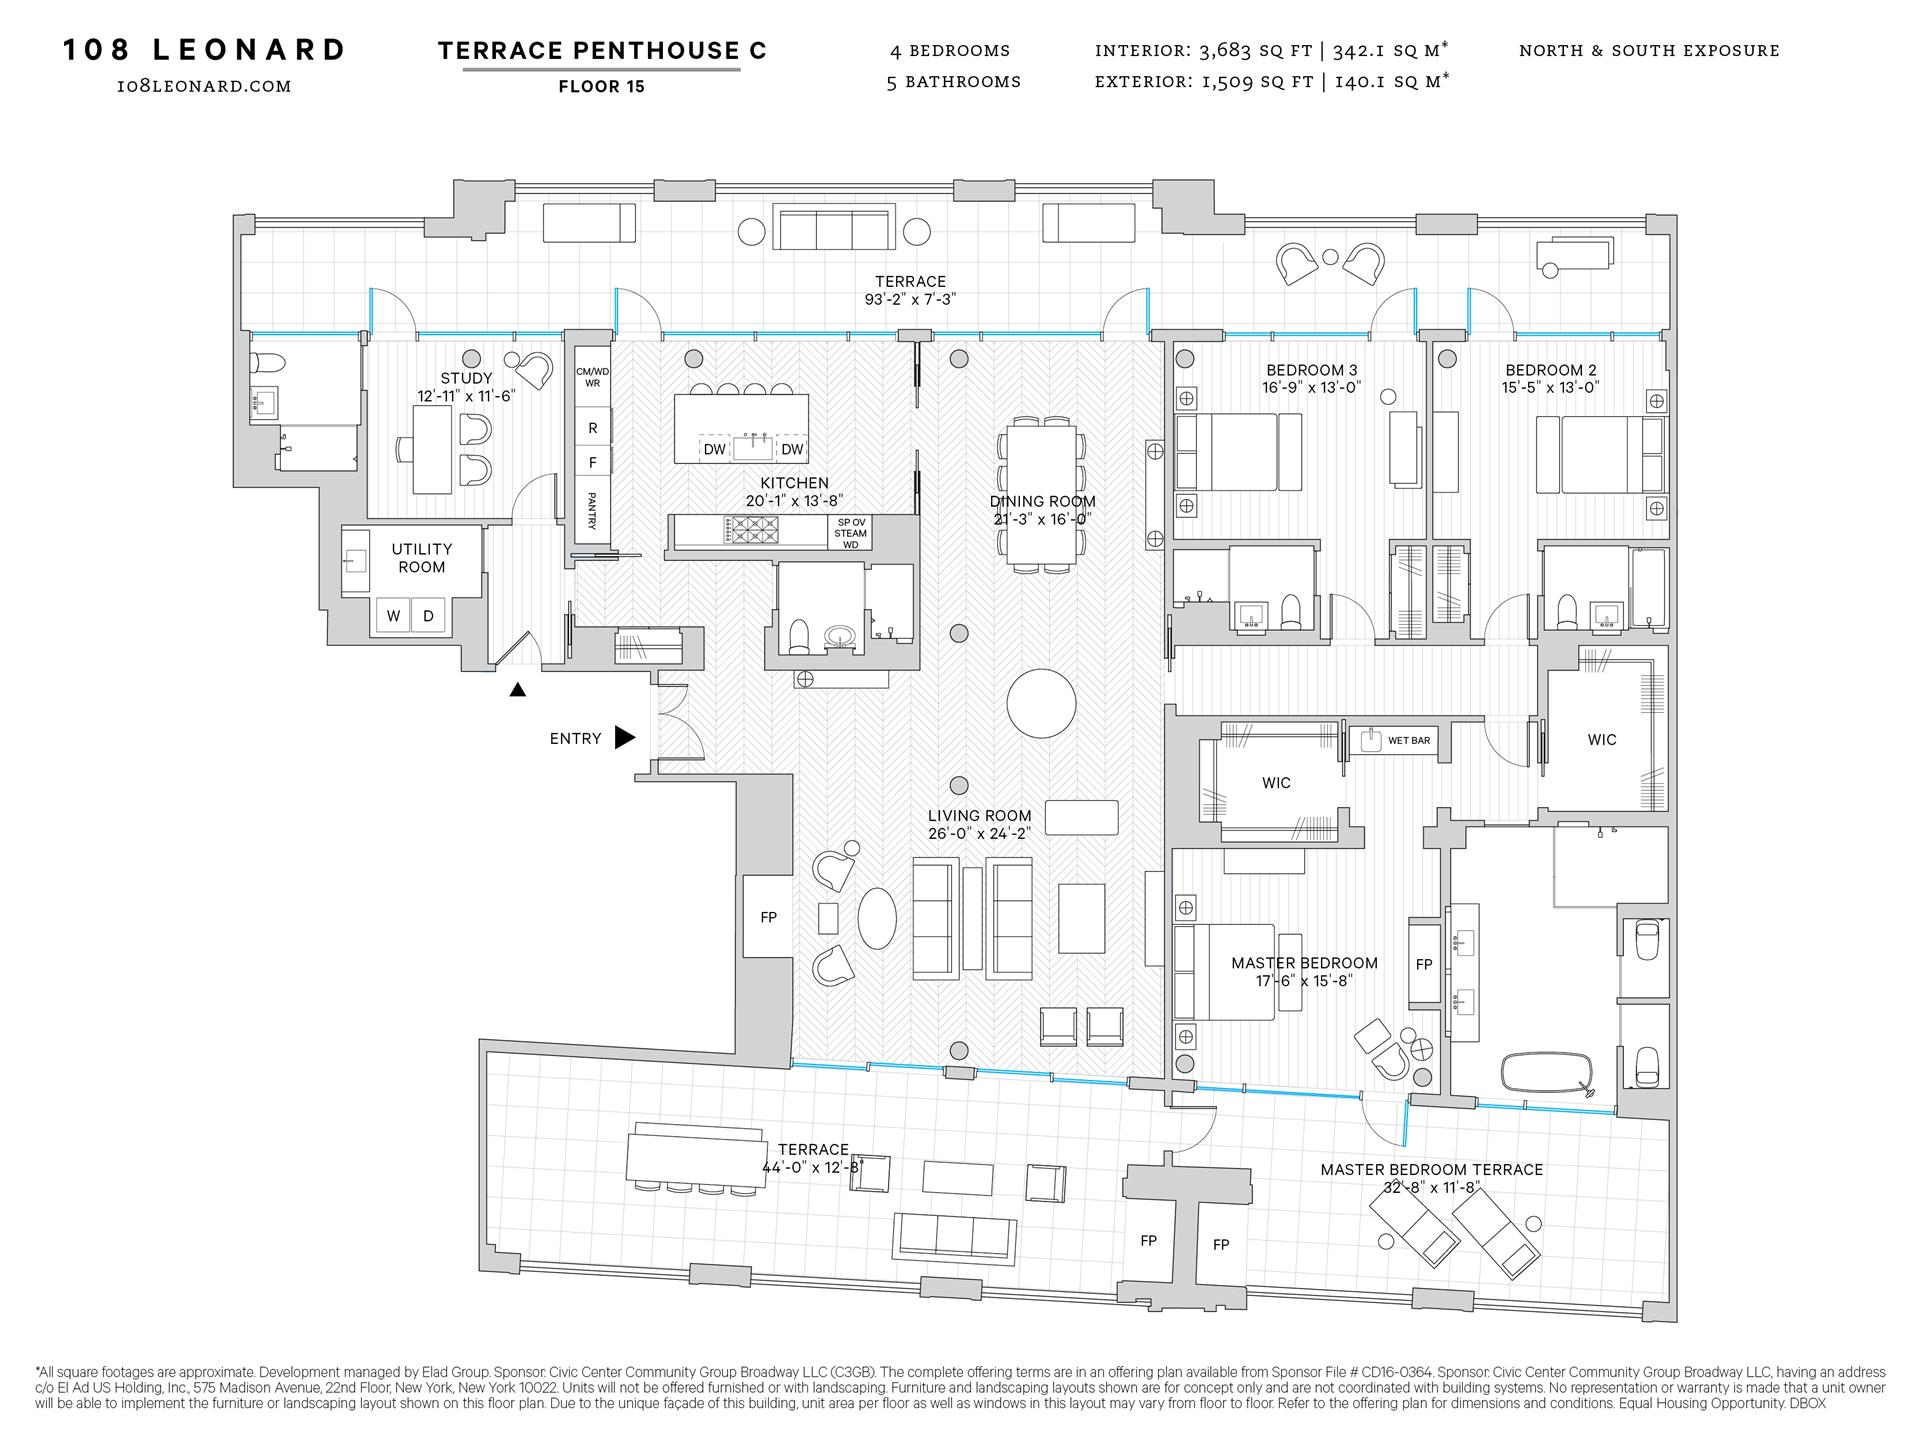 Floor plan of 108 Leonard Street, 15C - TriBeCa, New York